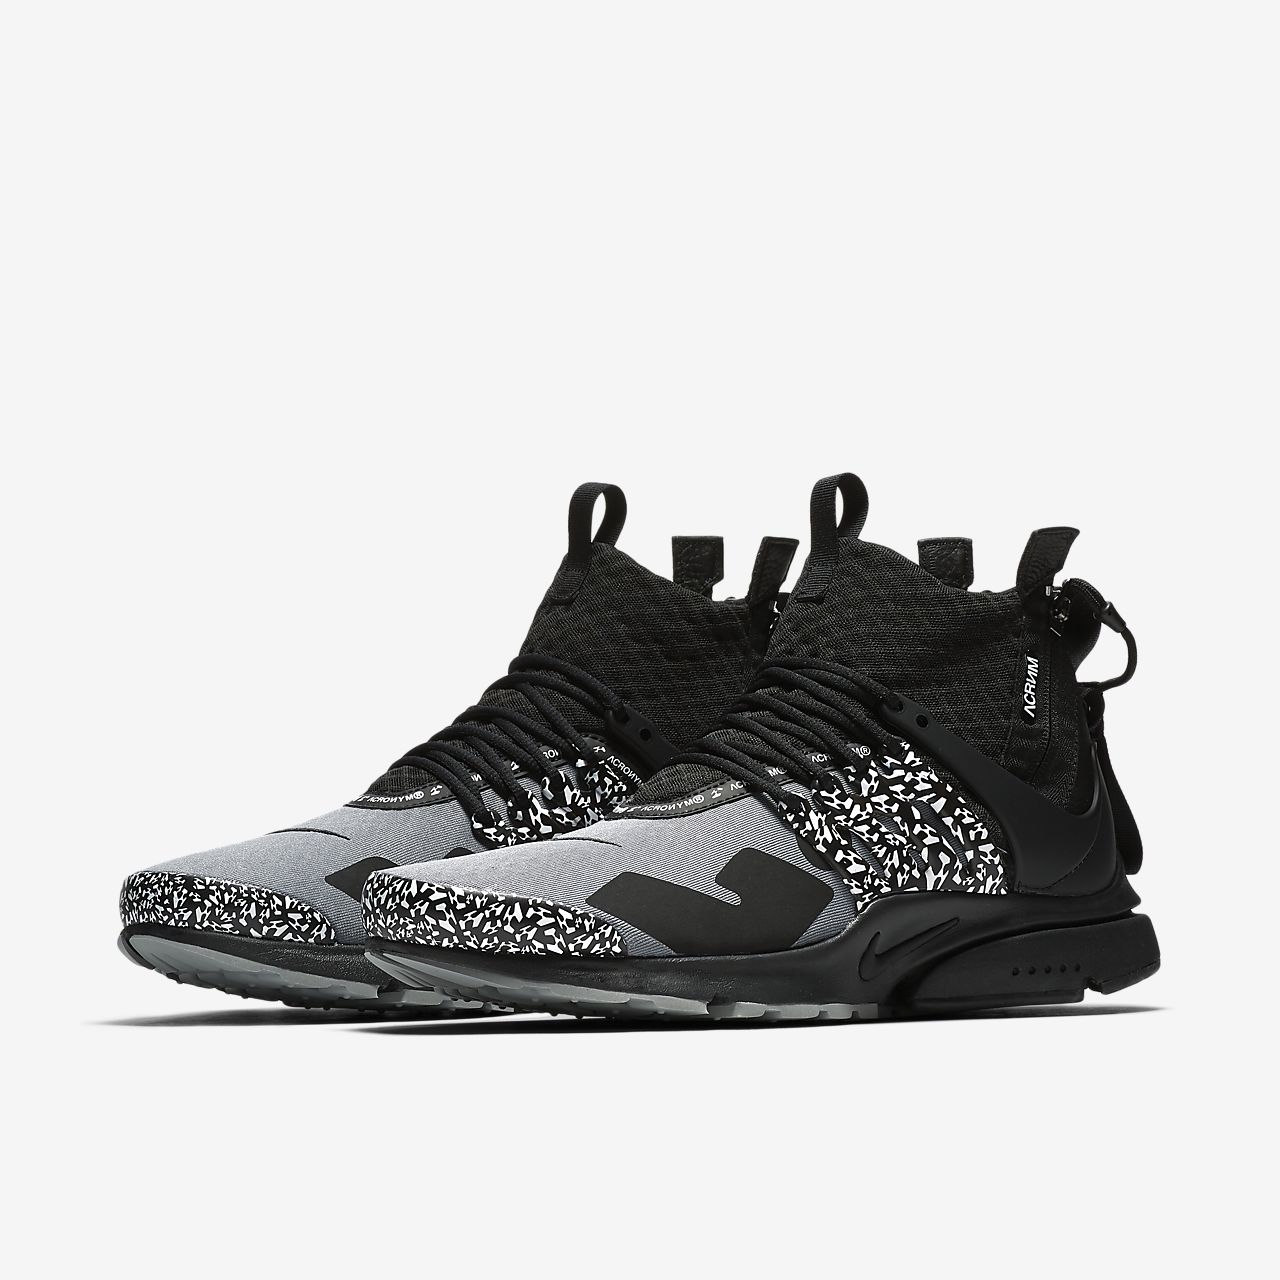 new arrival 1d8ab 10795 ... Nike Air Presto Mid SP x Acronym Mens Shoe